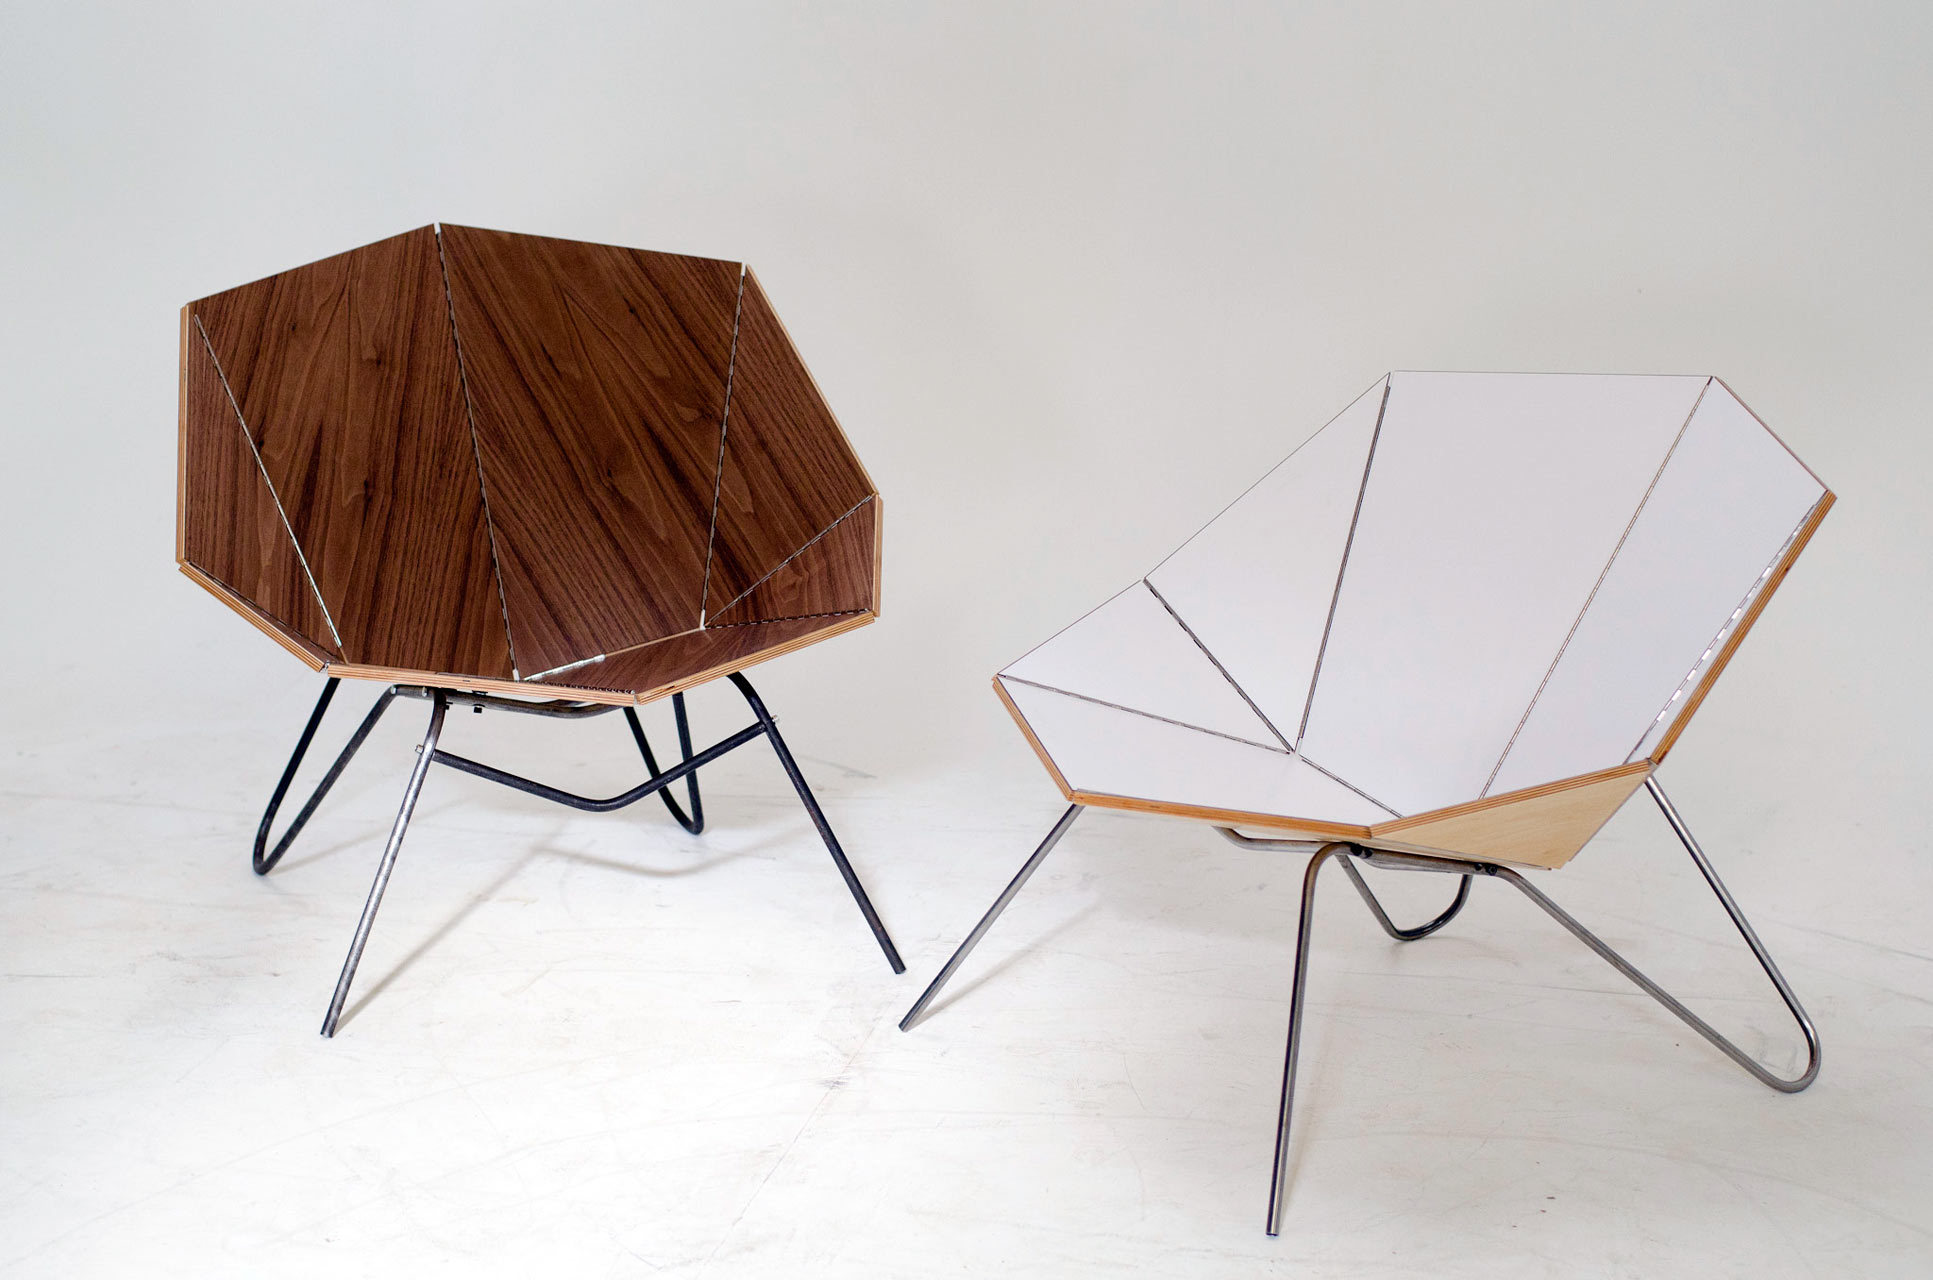 Cut amp Fold Modern Origami Like Furniture Design Milk